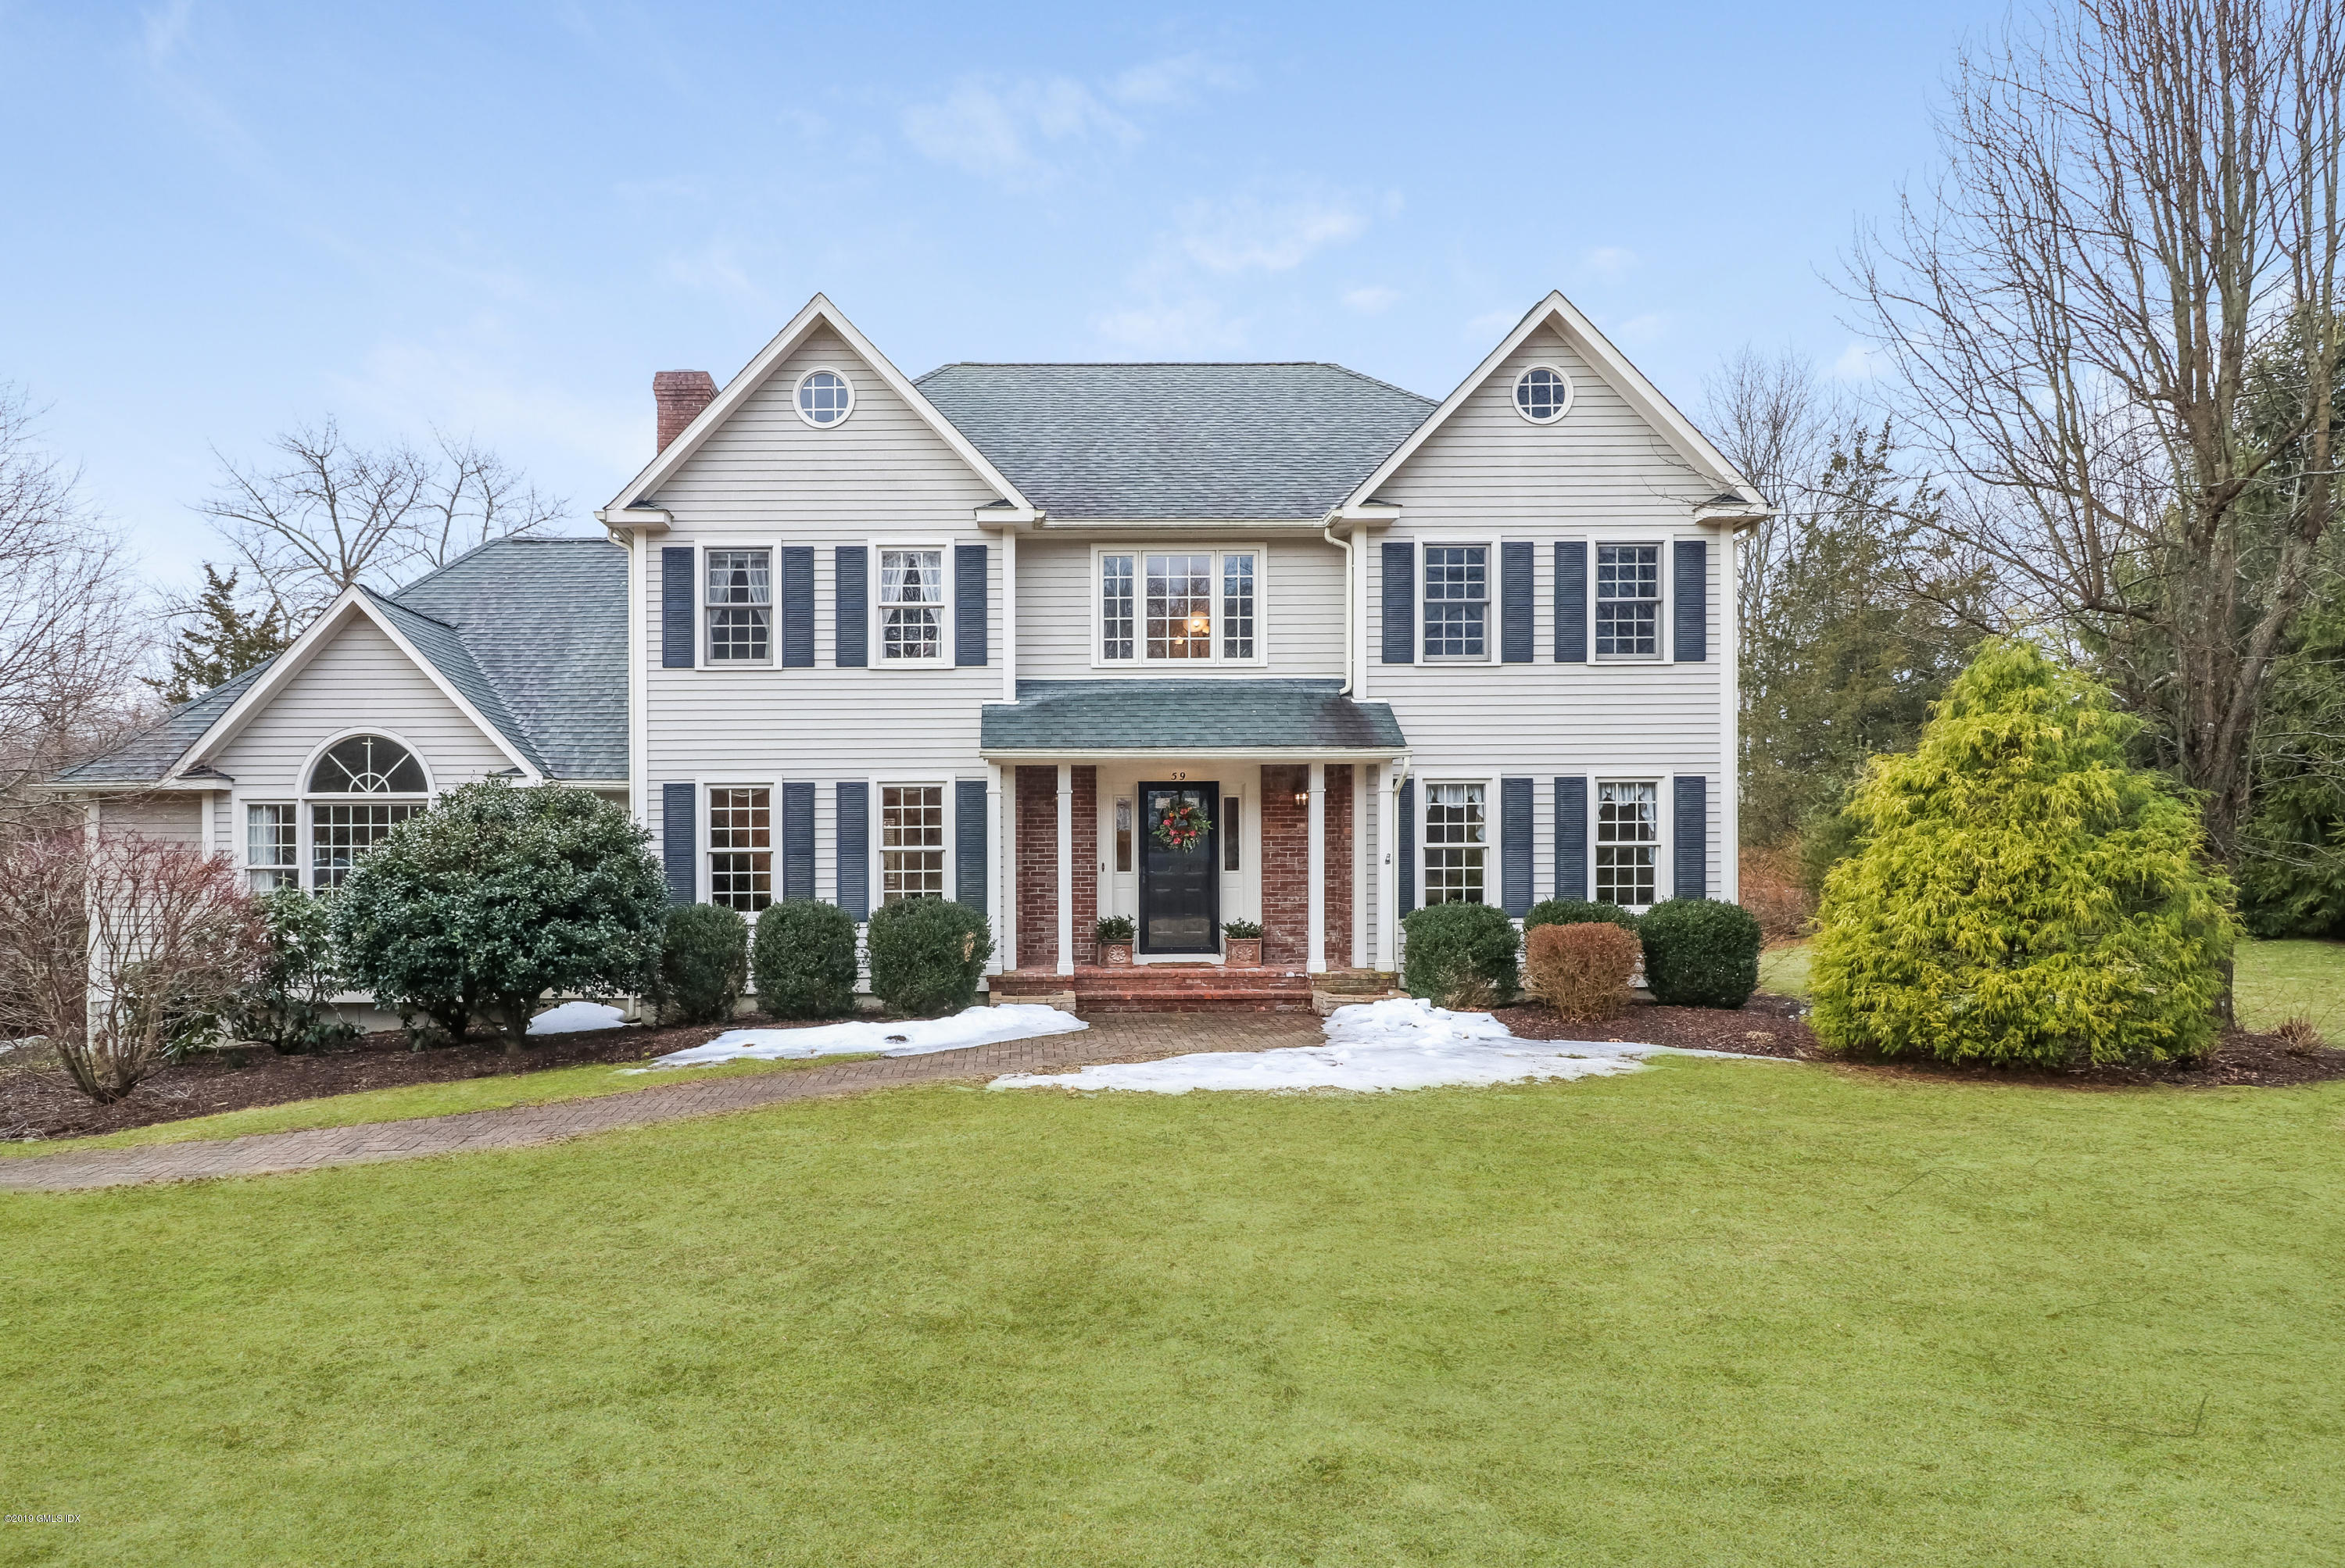 59 Blanket Meadow Road, Monroe, CT 06468